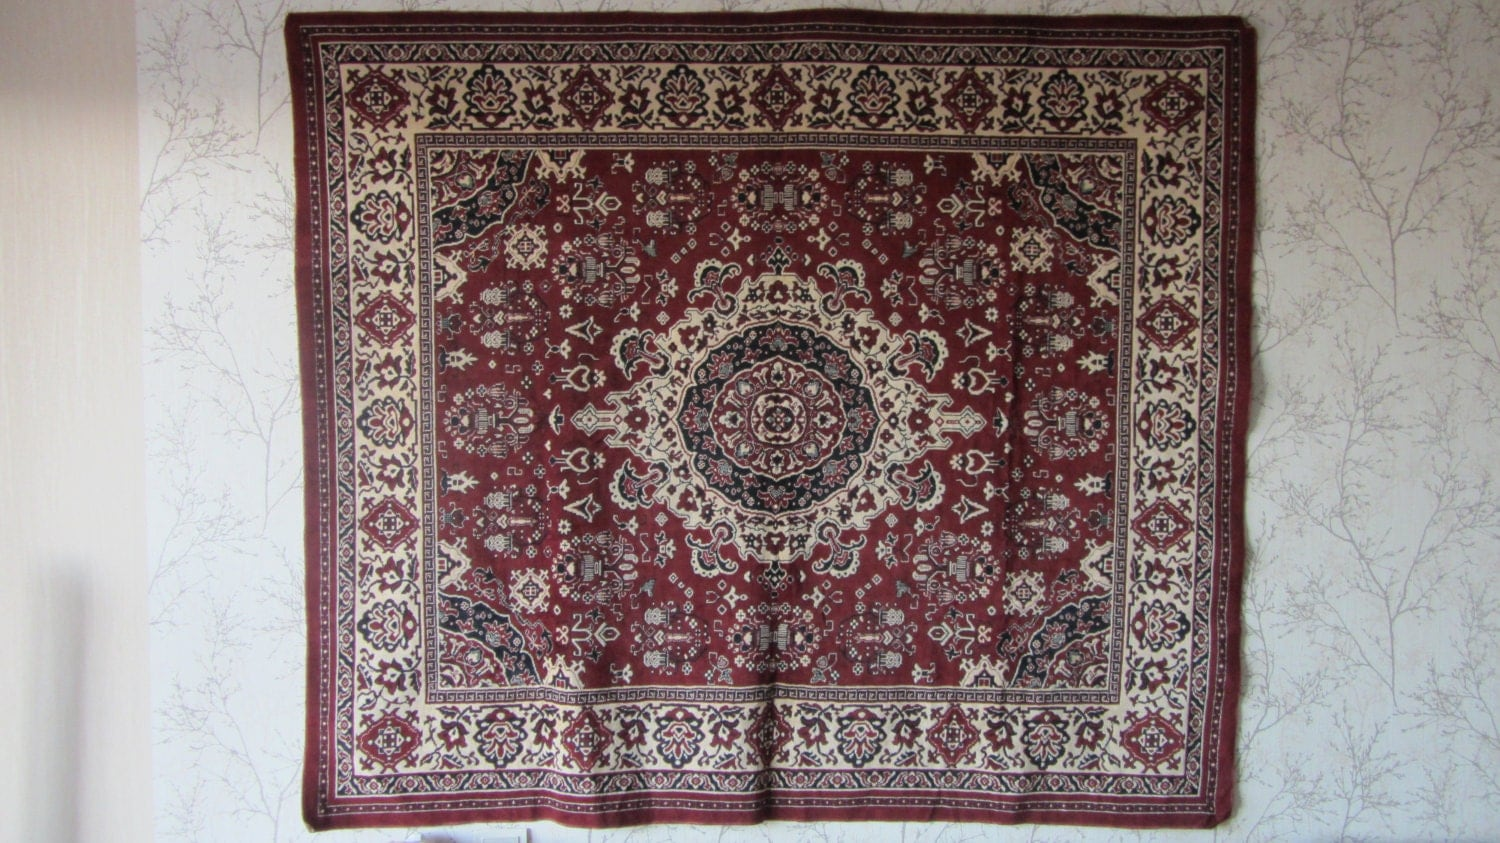 Vintage Original Divandec Carpet from Germany, New mint condition, Home decor Ca